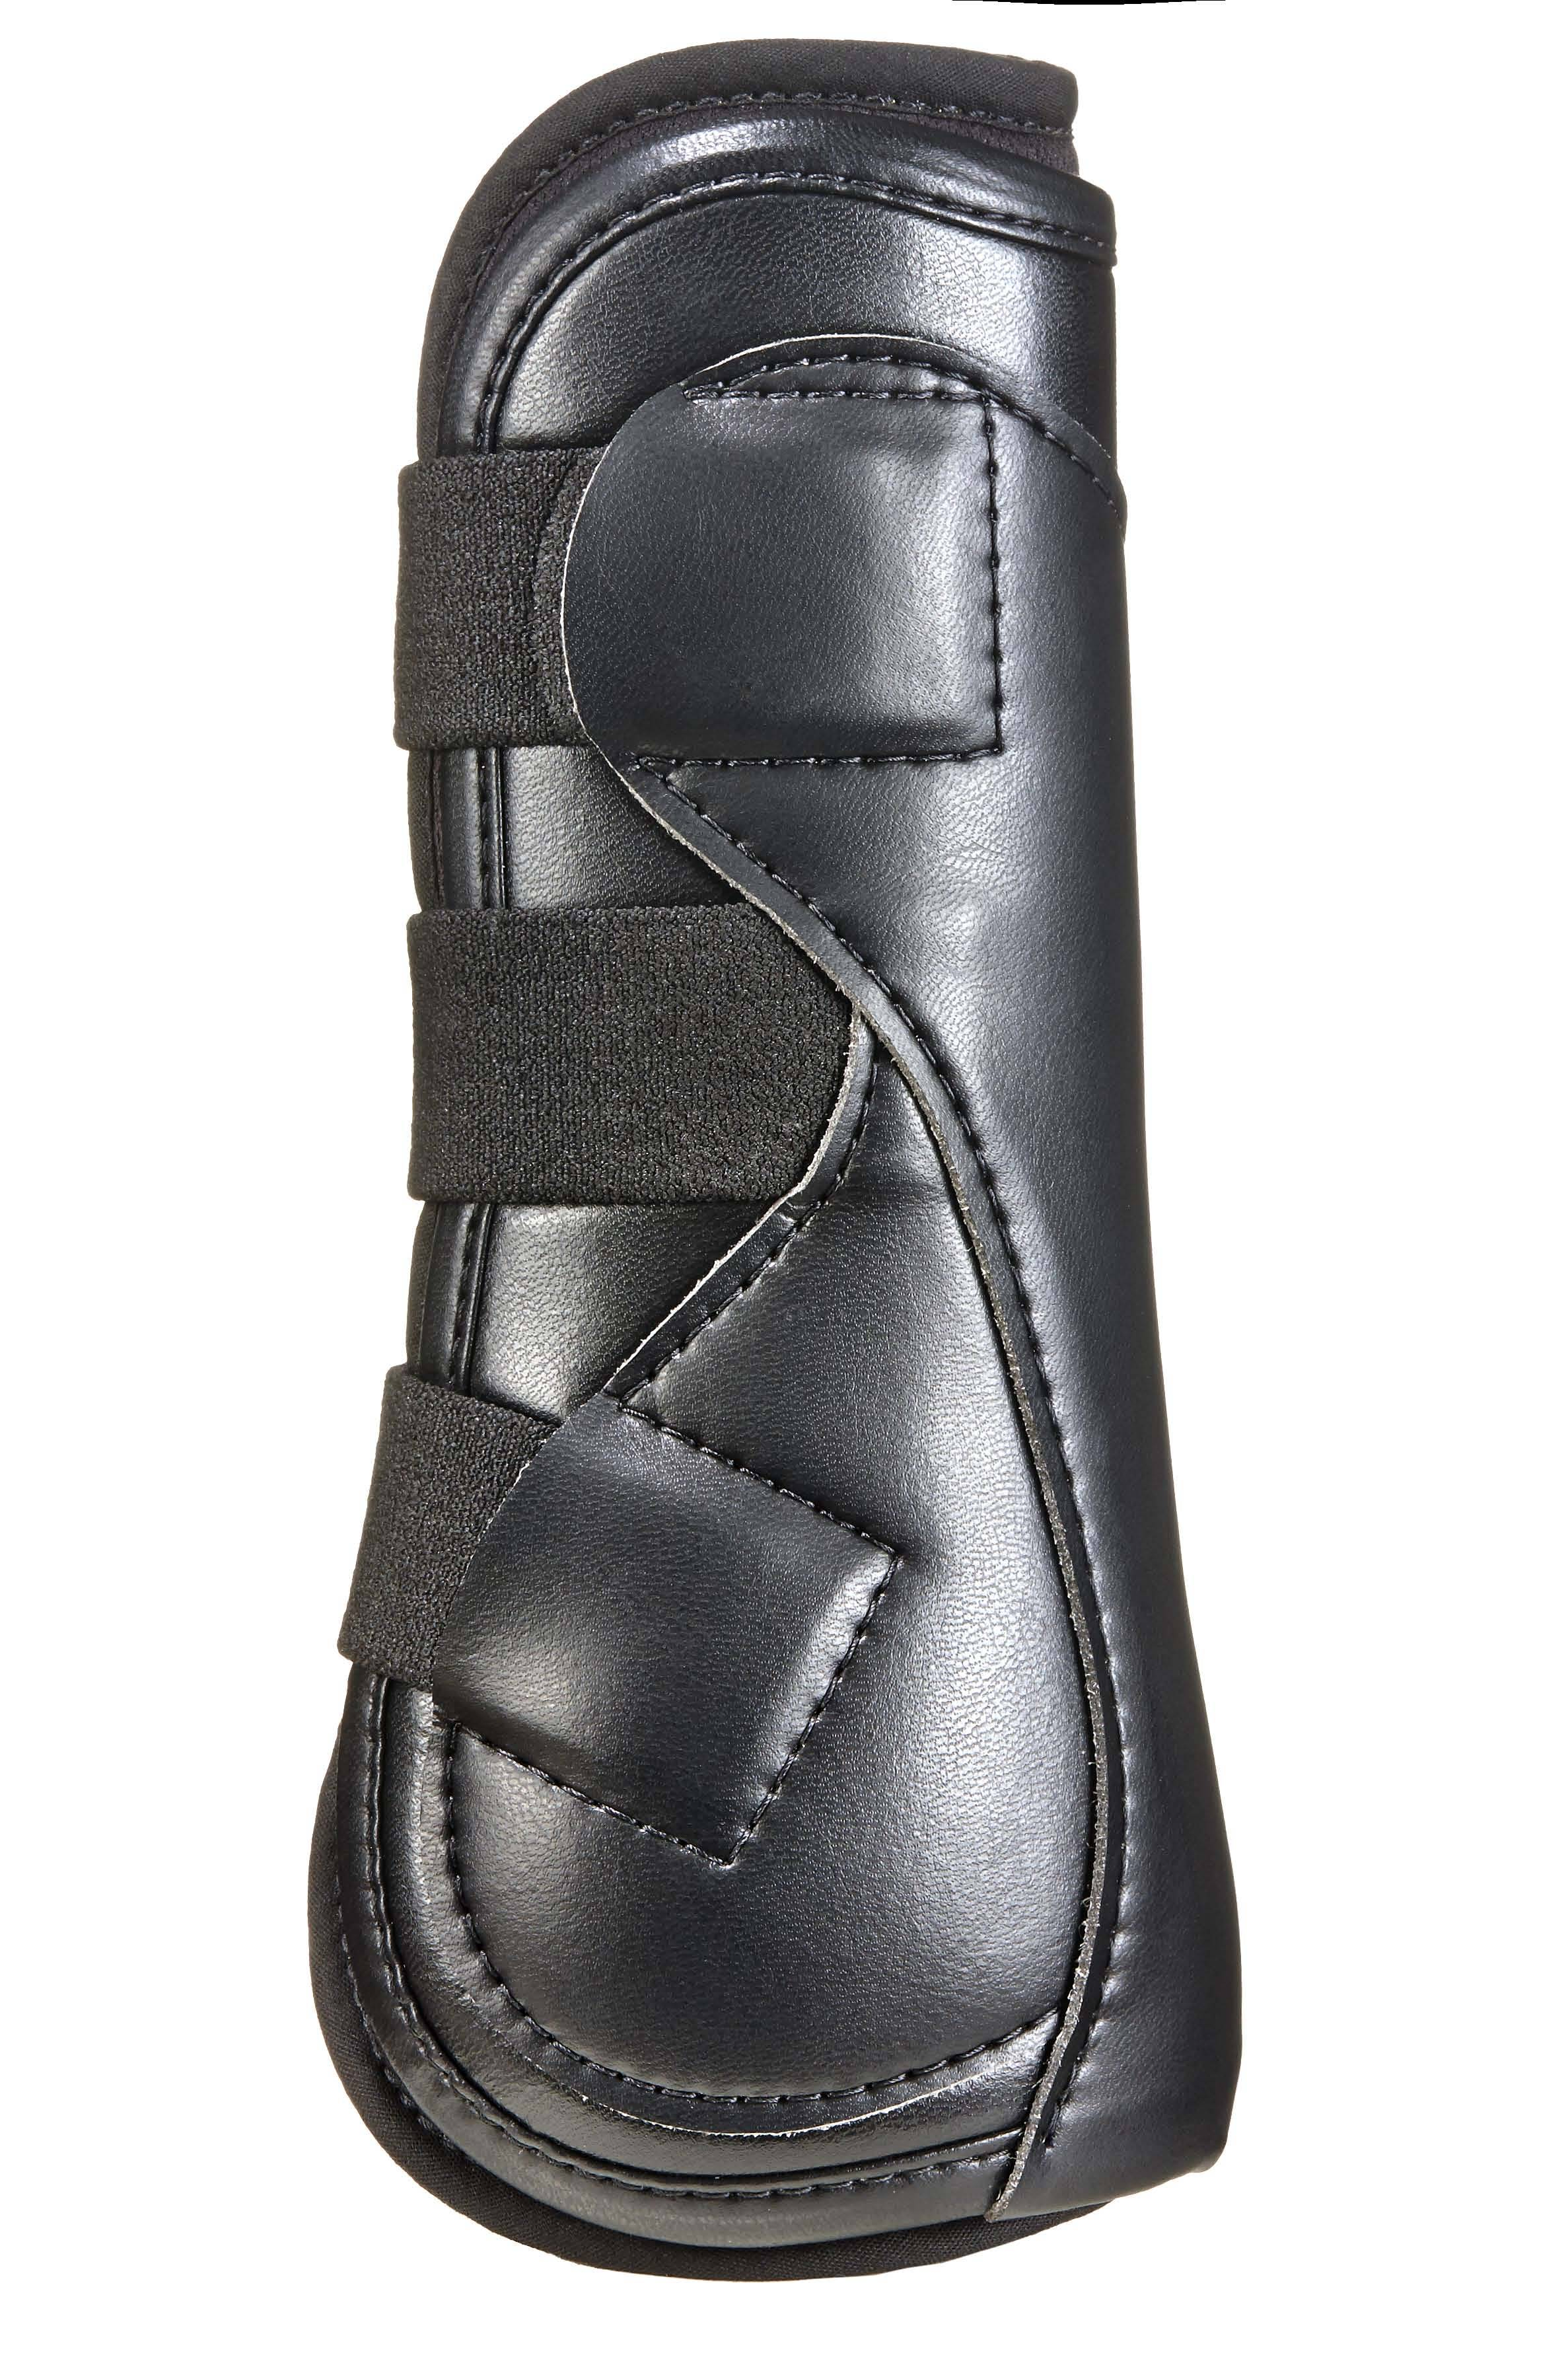 Equifit Eq-Teq Front Boot